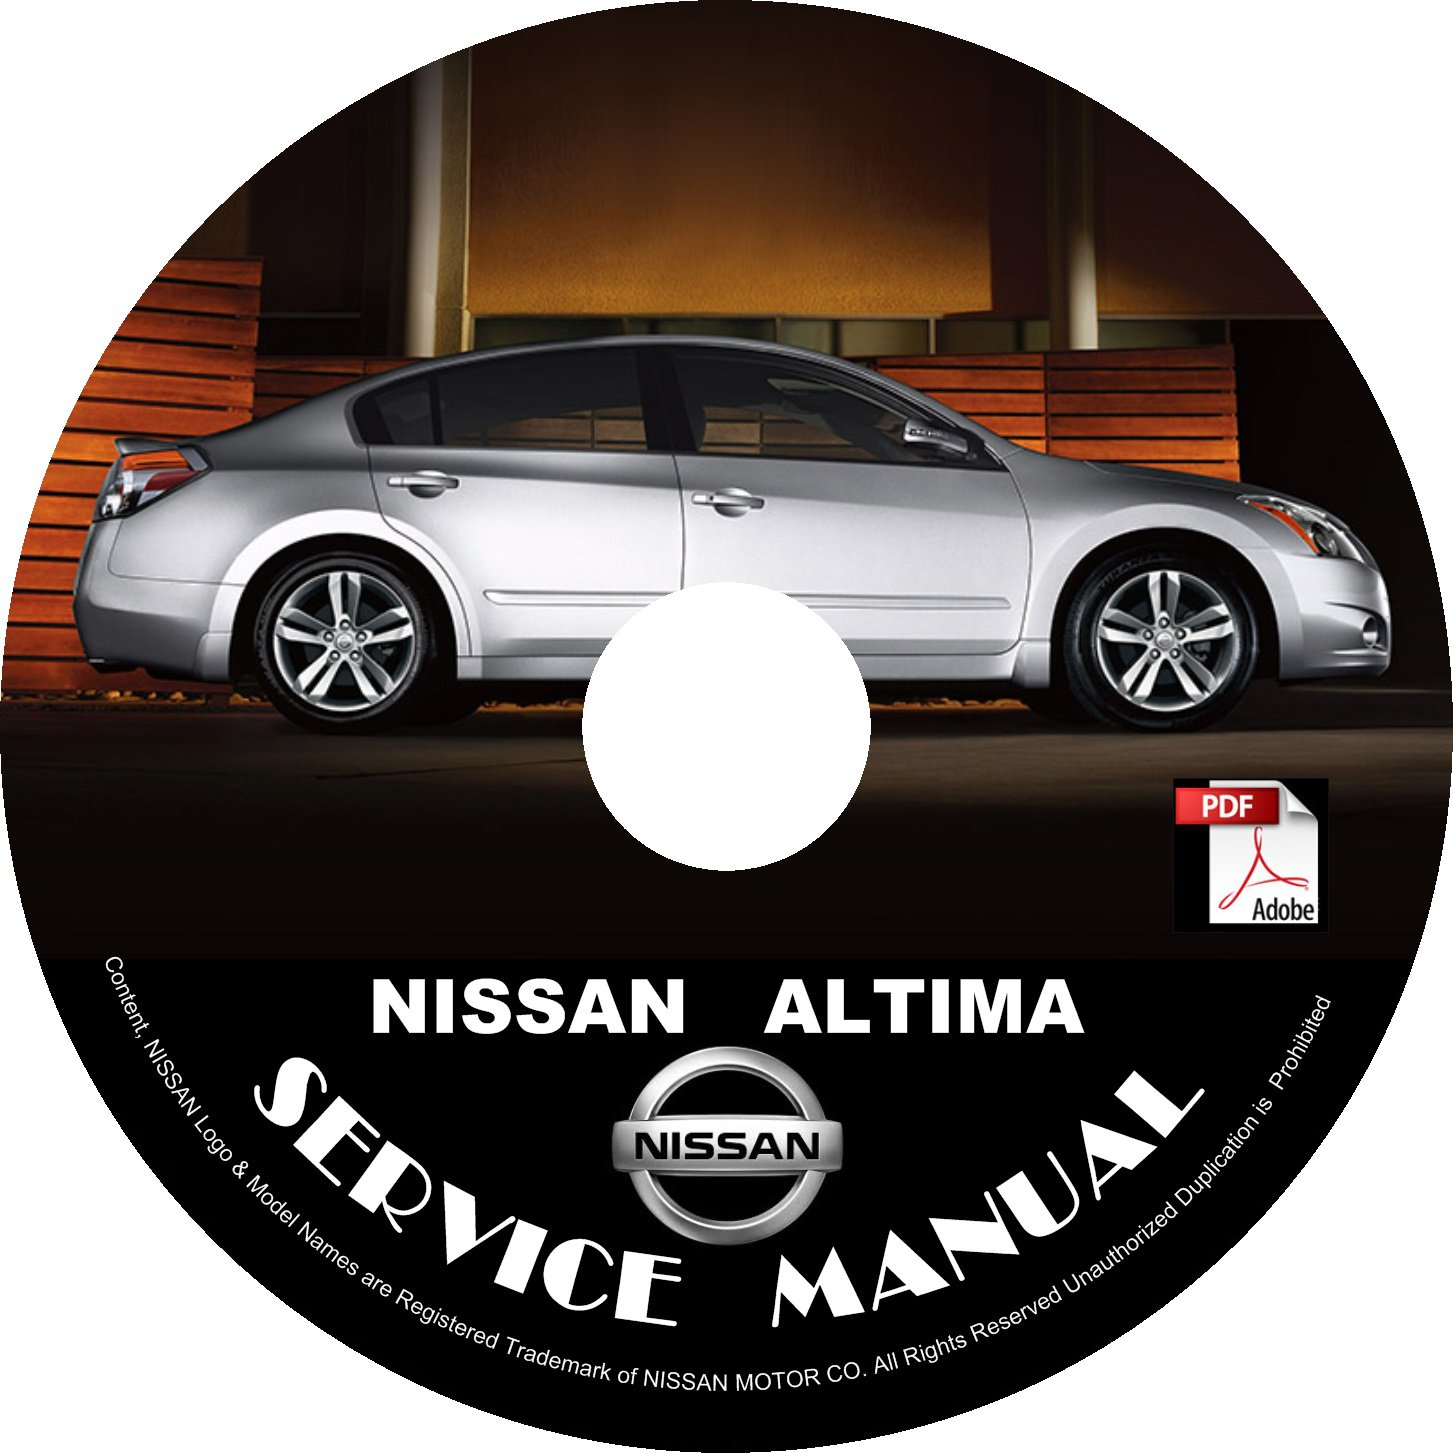 Nissan 2008 Altima Service Repair Shop Manual on CD 08 Factory OEM